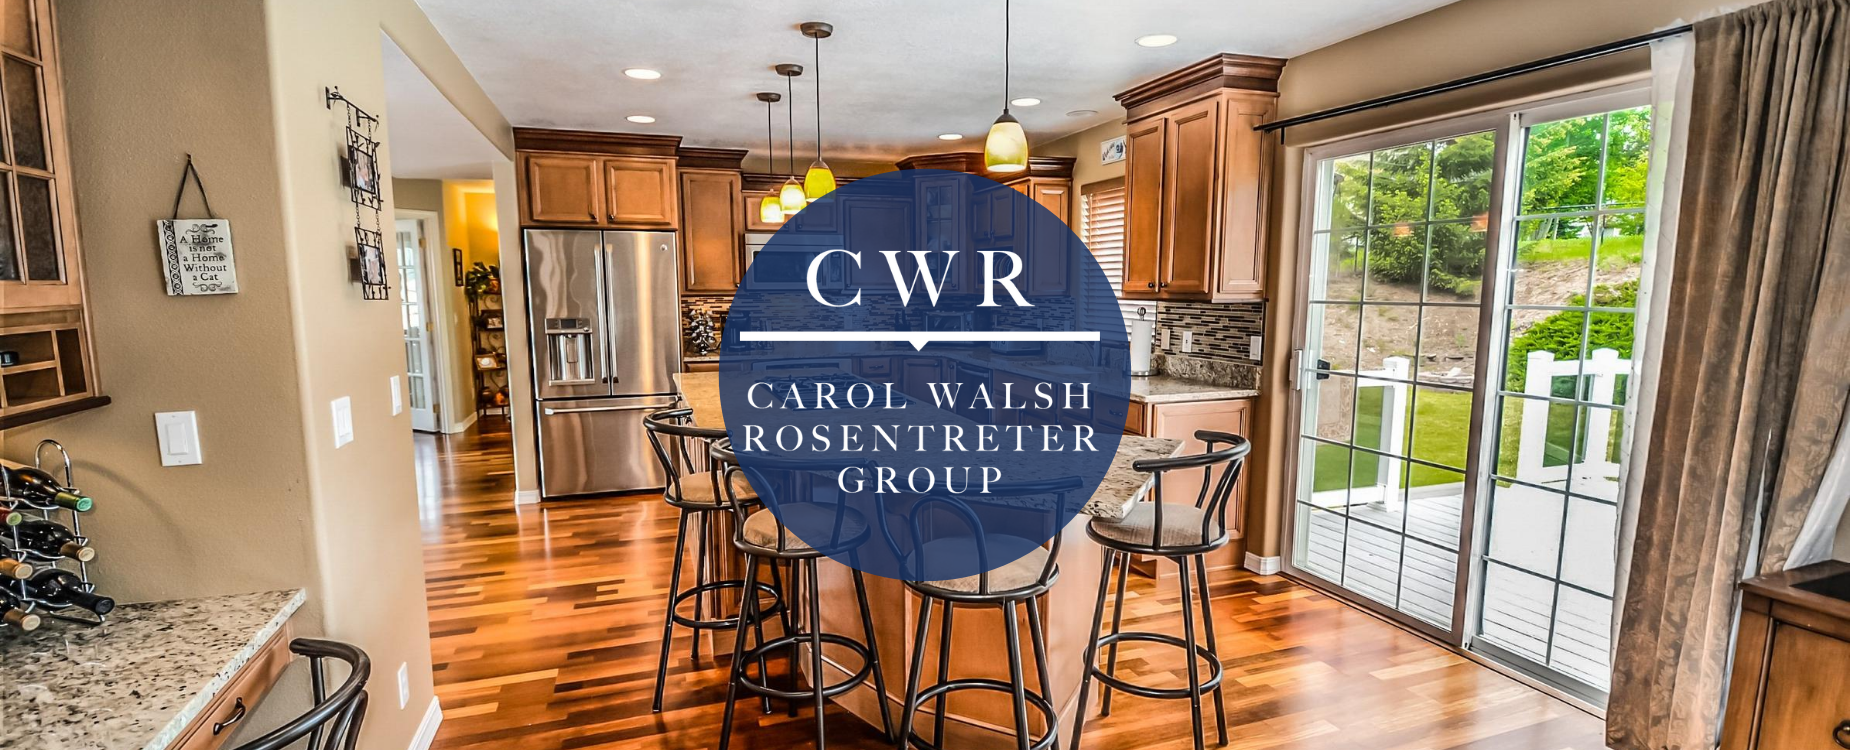 CWR Group 5